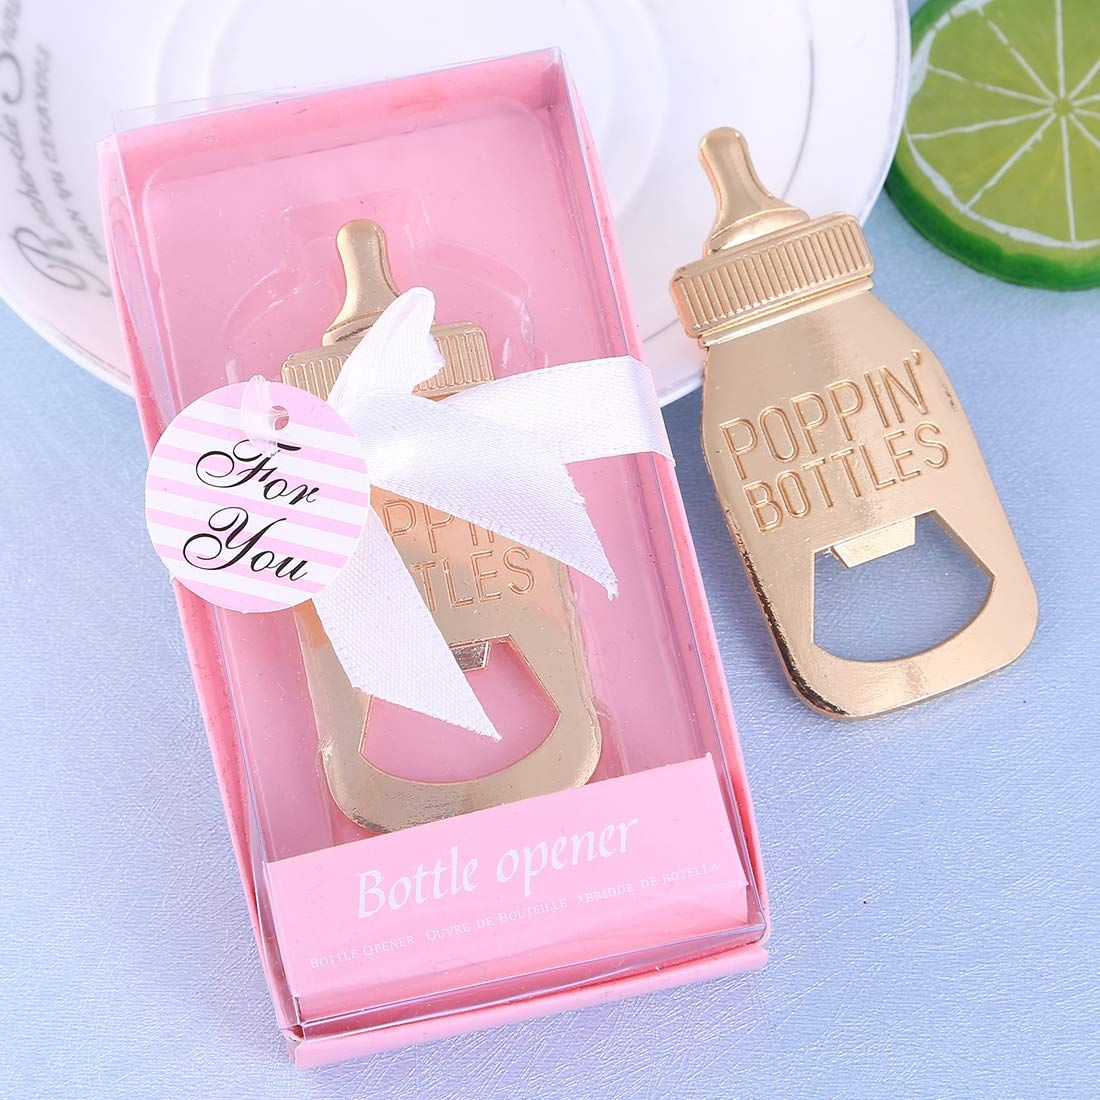 Yuokwer 24 pcs Bottle Opener Baby Shower Favor for Guest,Rose Gold Feeding Bottle Opener Wedding Favors Baby Shower Giveaways Gift to Guest, Party Favors Gift & Party Decorations Supplies (Pink, 24) by Yuokwer